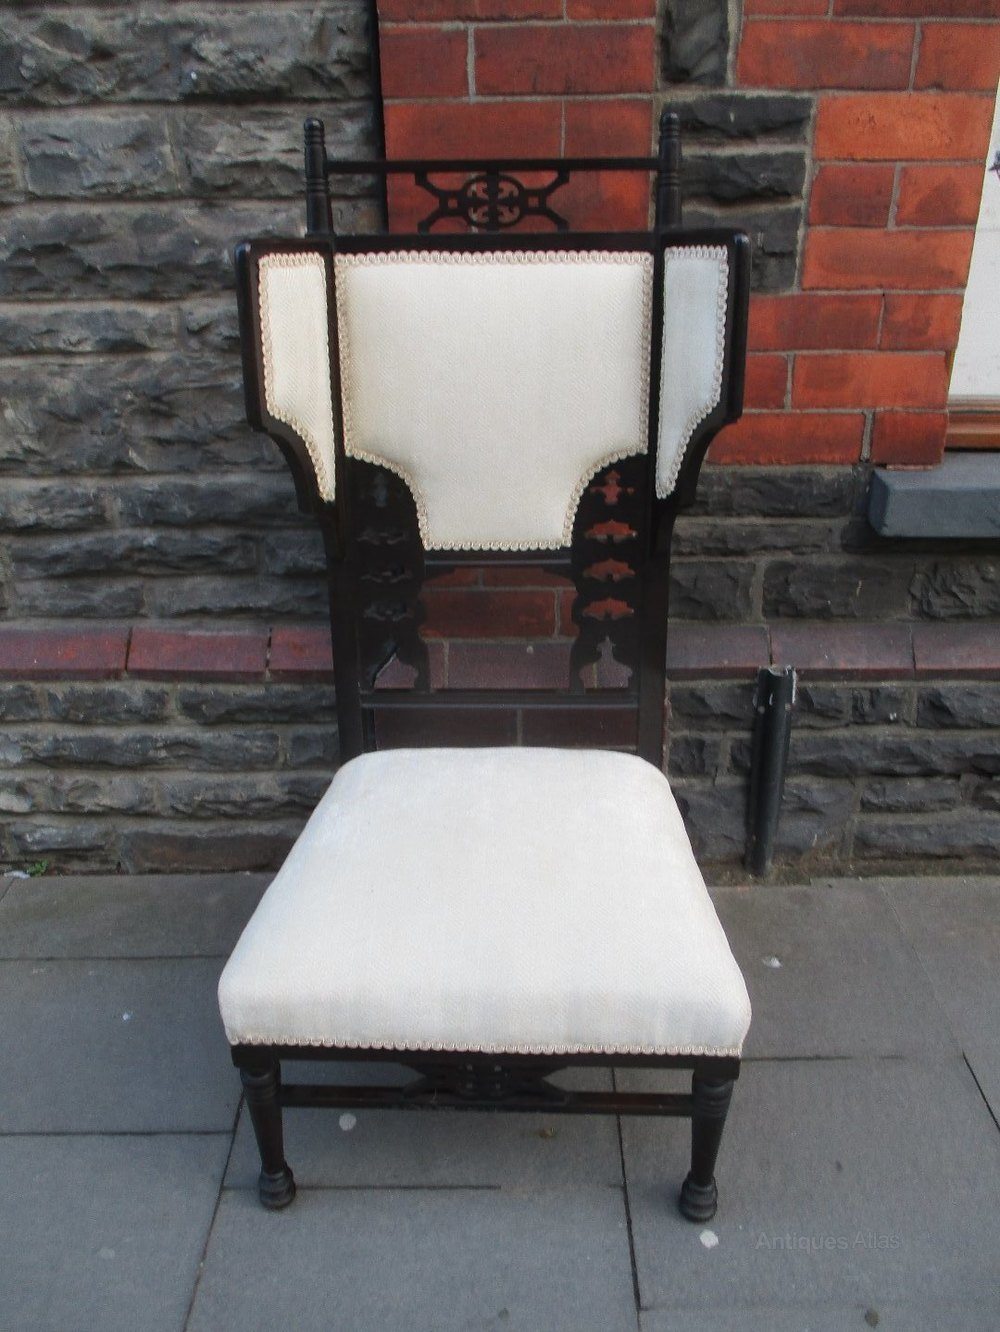 Aesthetic movement chair - Antique Salon Chairs - Antiques Atlas